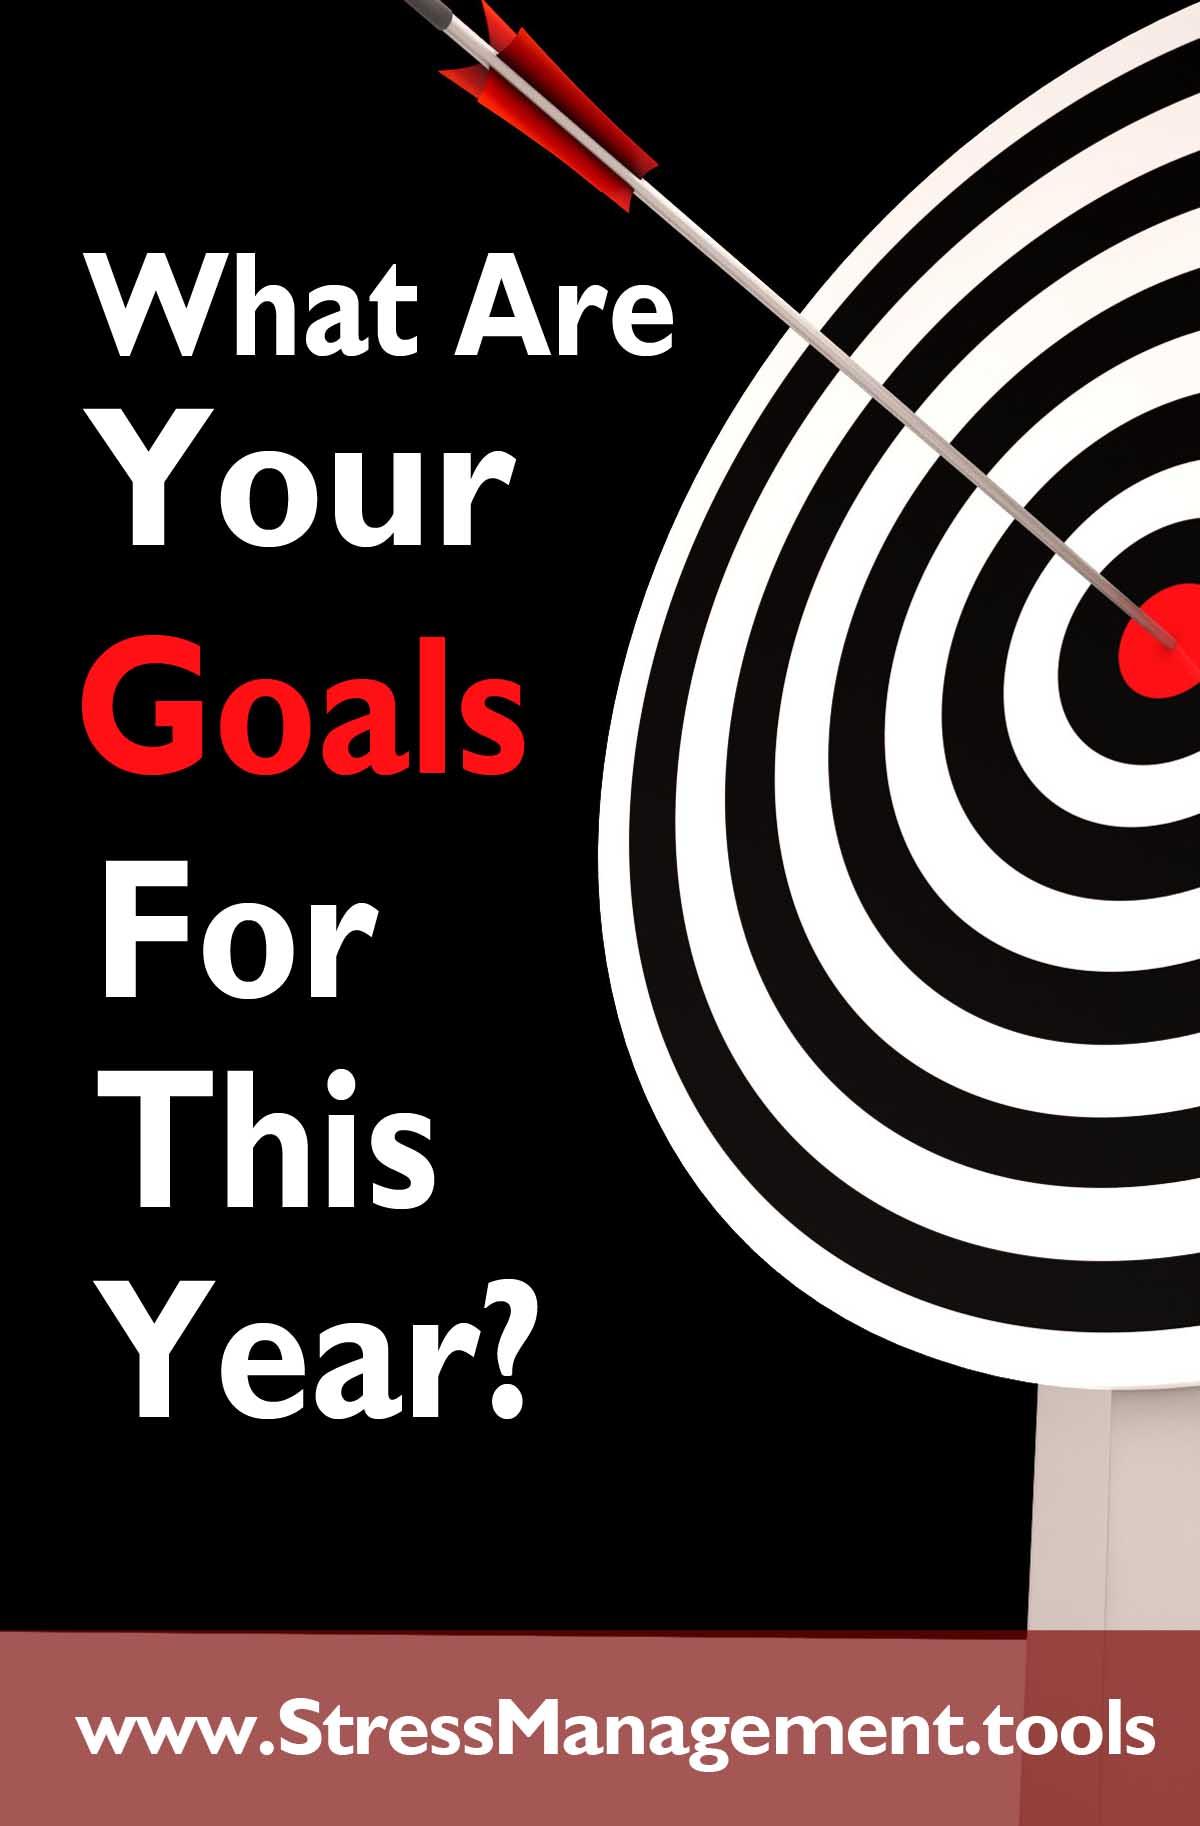 What Are Your Goals For This Year?